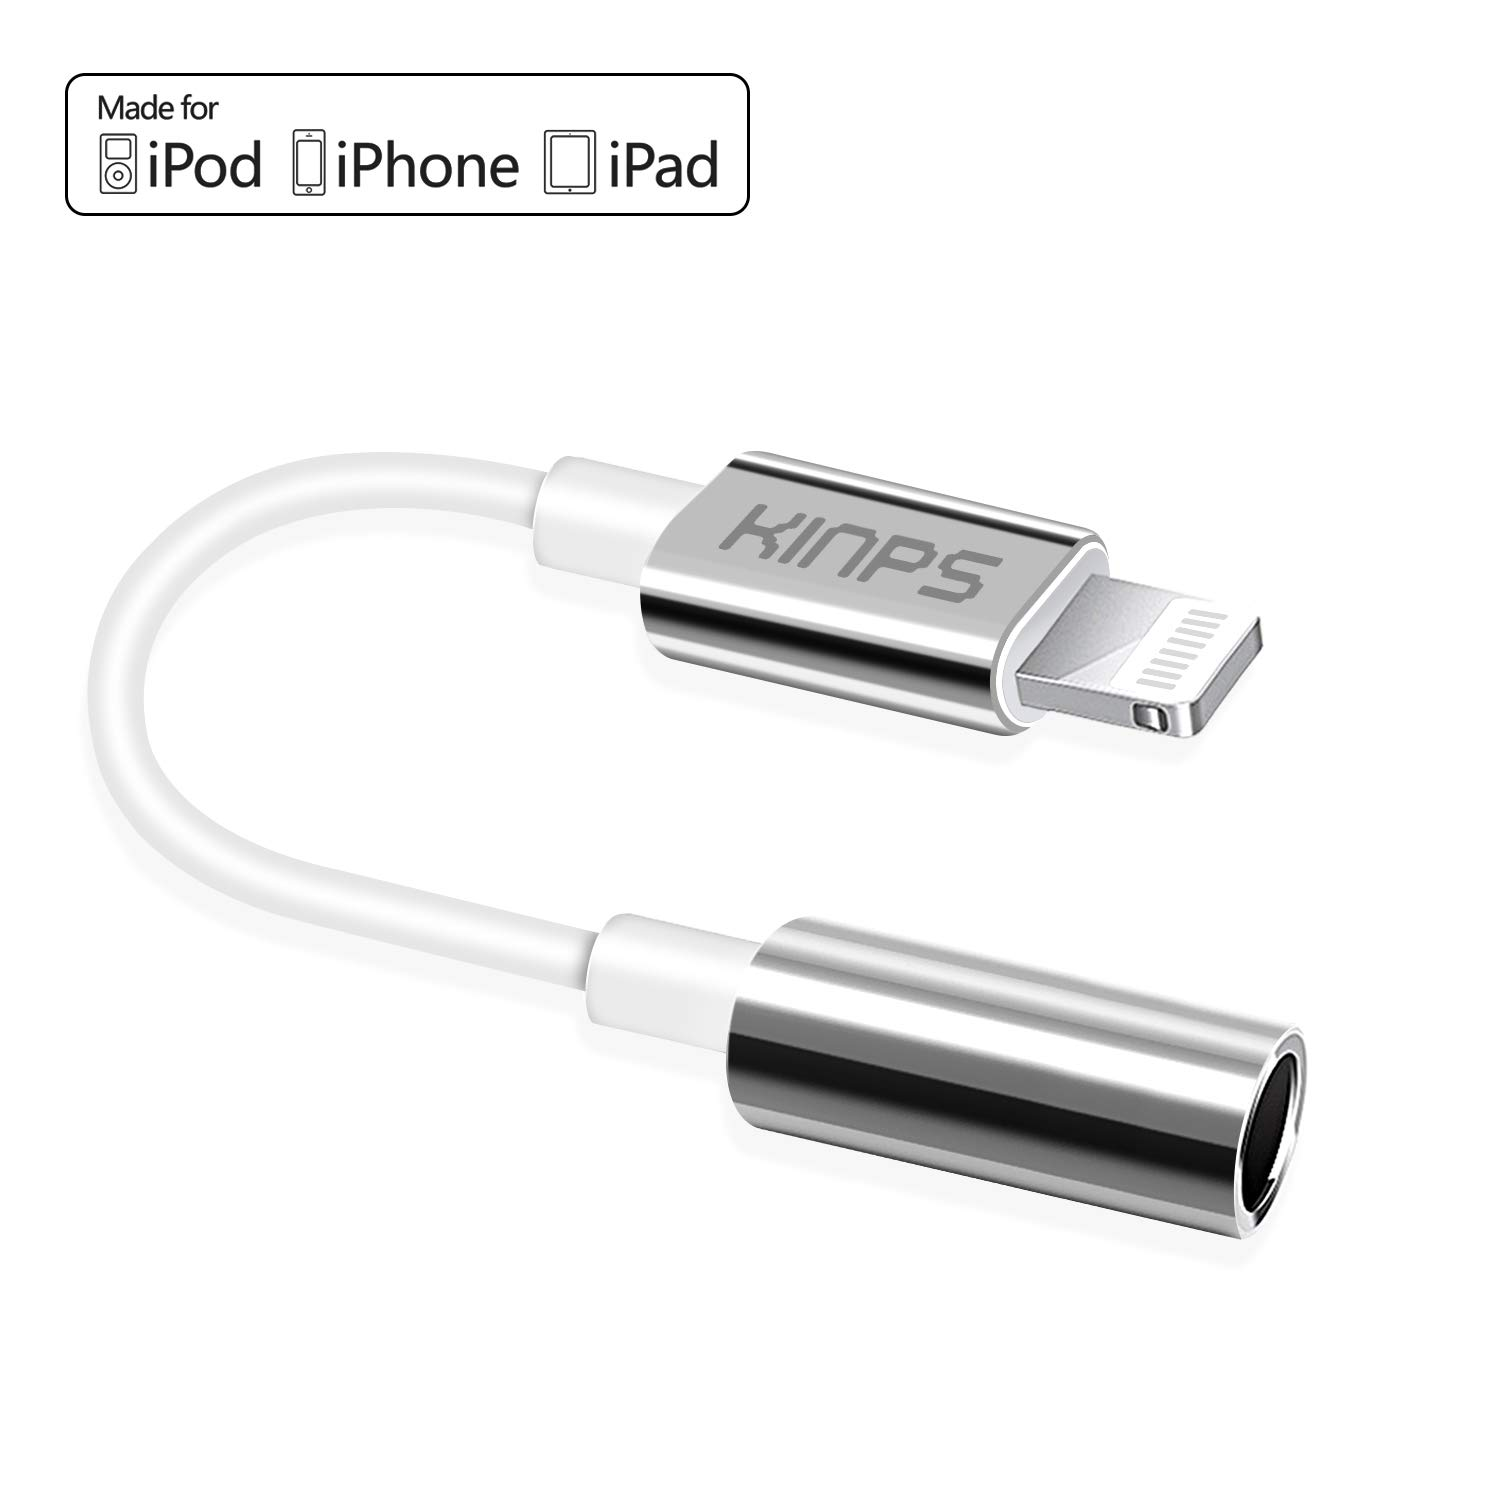 KINPS Apple MFI Certified Lightning to 3.5 mm Headphone Jack Adapter Compatible with iPhone 11 Pro Max/11 Pro/11/XS Max/XS/XR/X/8 Plus/8/7 Plus/7 (White-TPE)